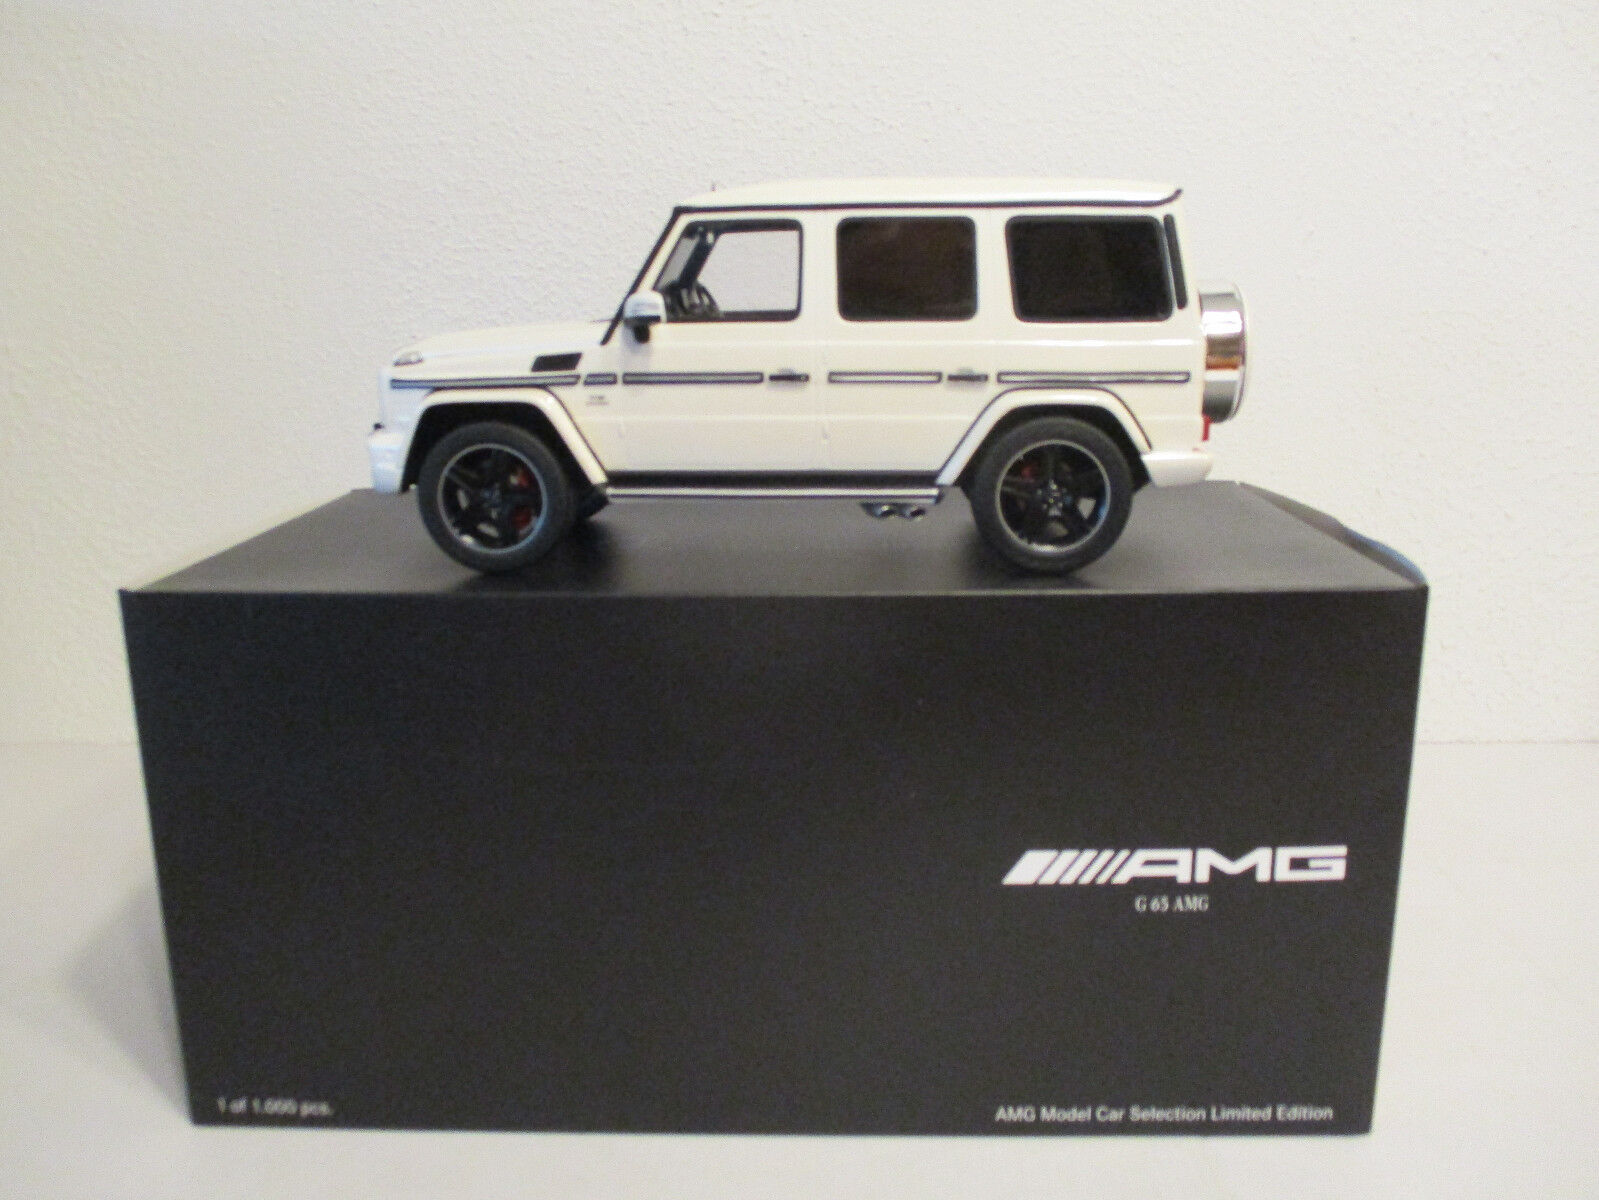 (Gok) 1 18 Gt anda Mercedes Benz G 65 AMG Neuf Embalage Scell 65533;,